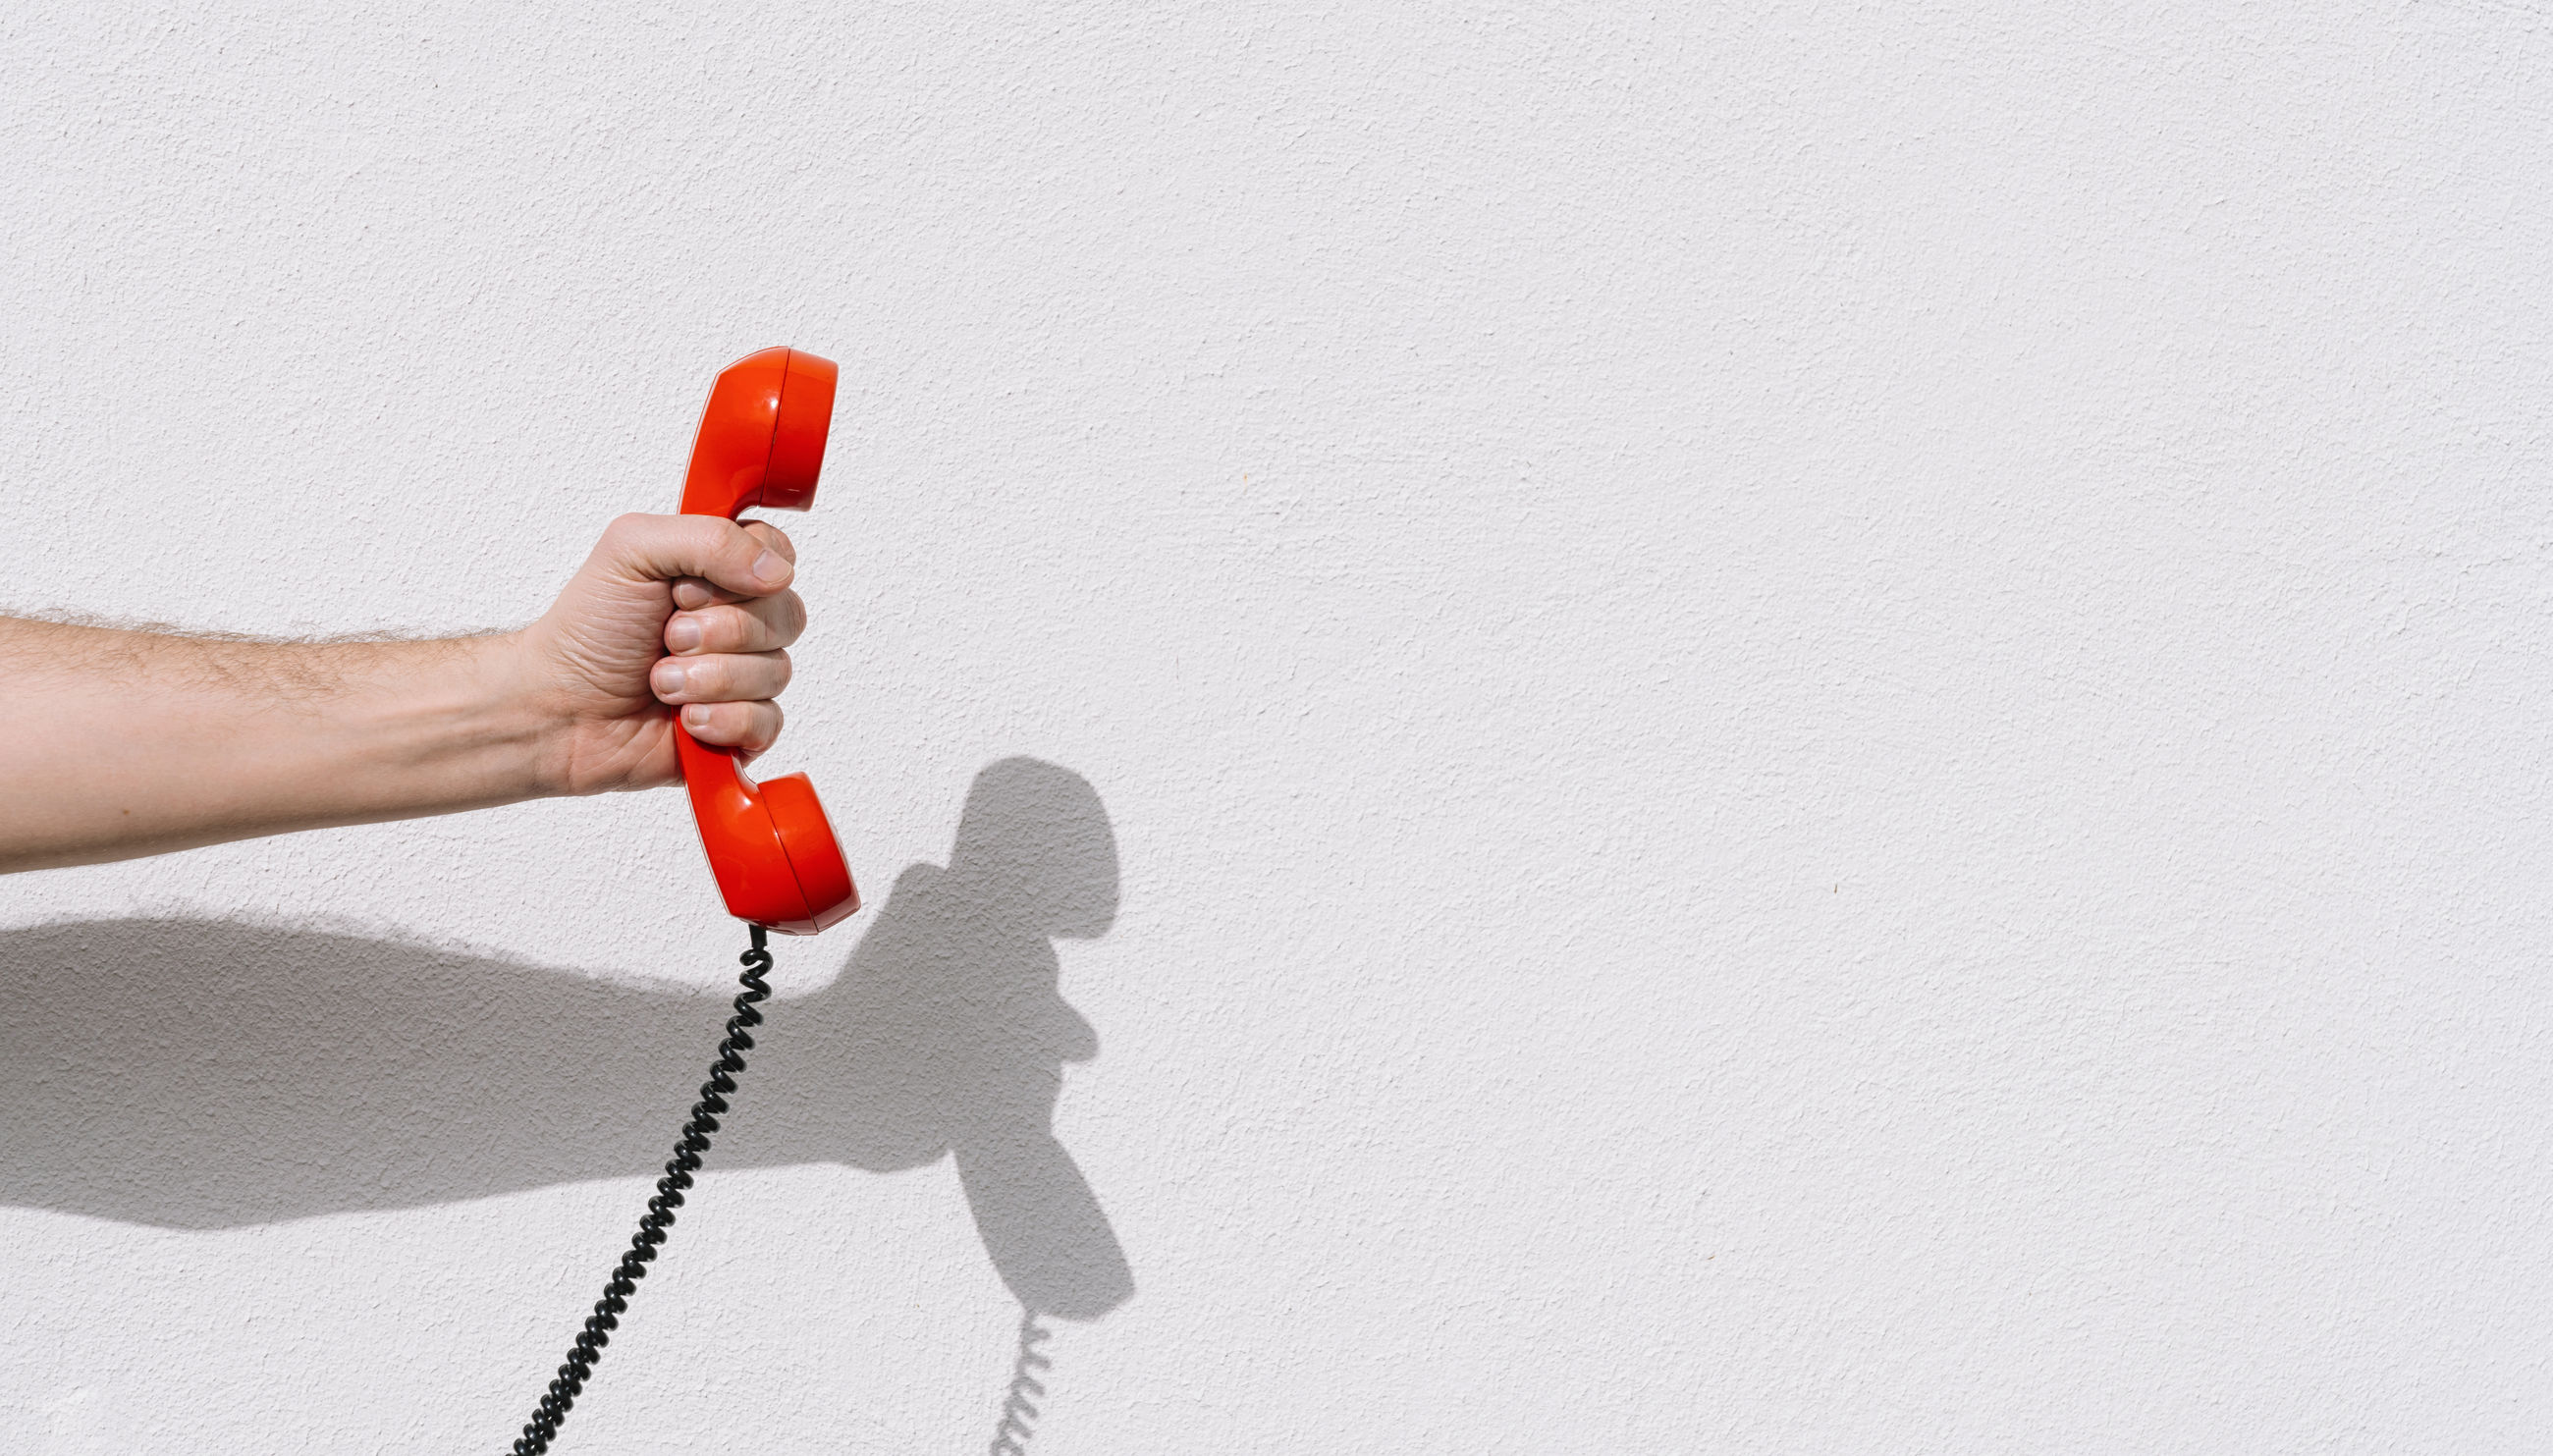 Cropped hand of man holding red telephone receiver against white wall